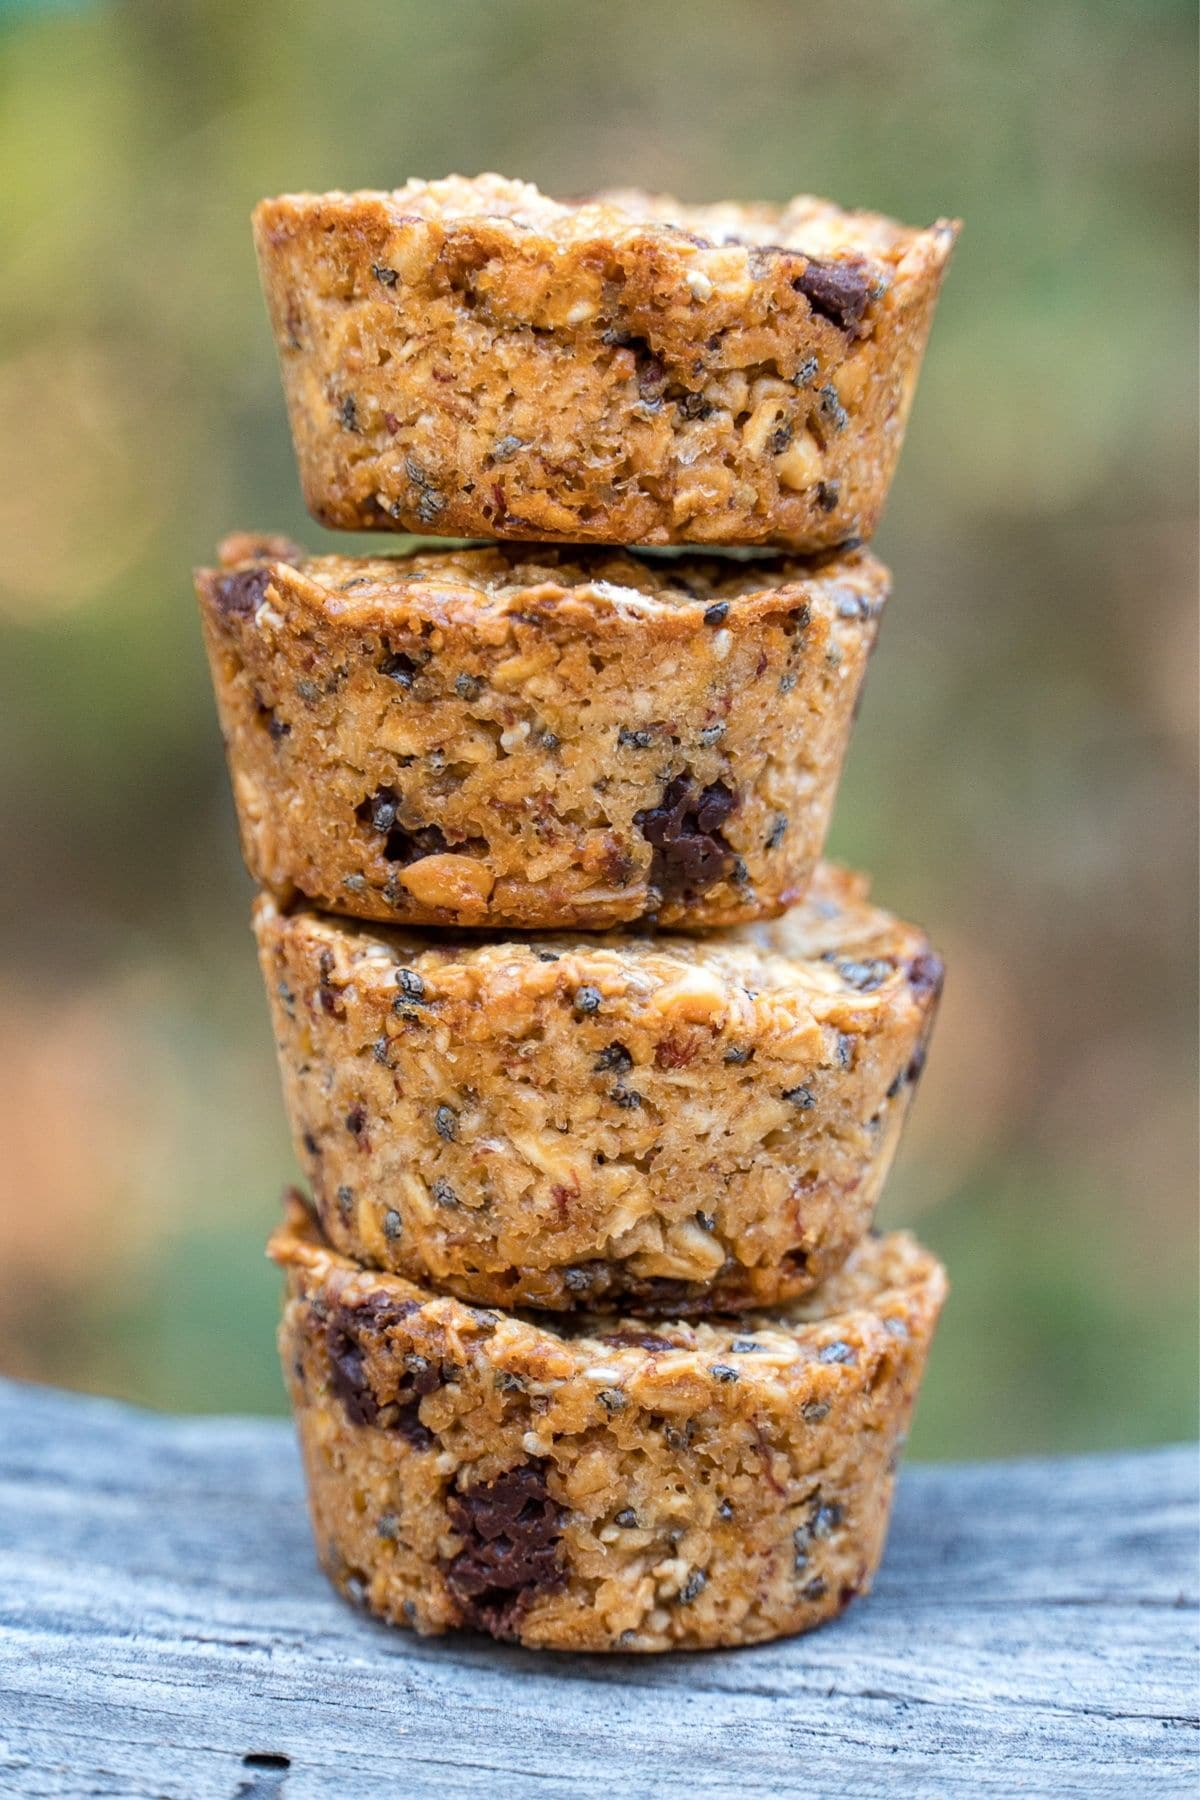 Four granola bites stacked with a natural background